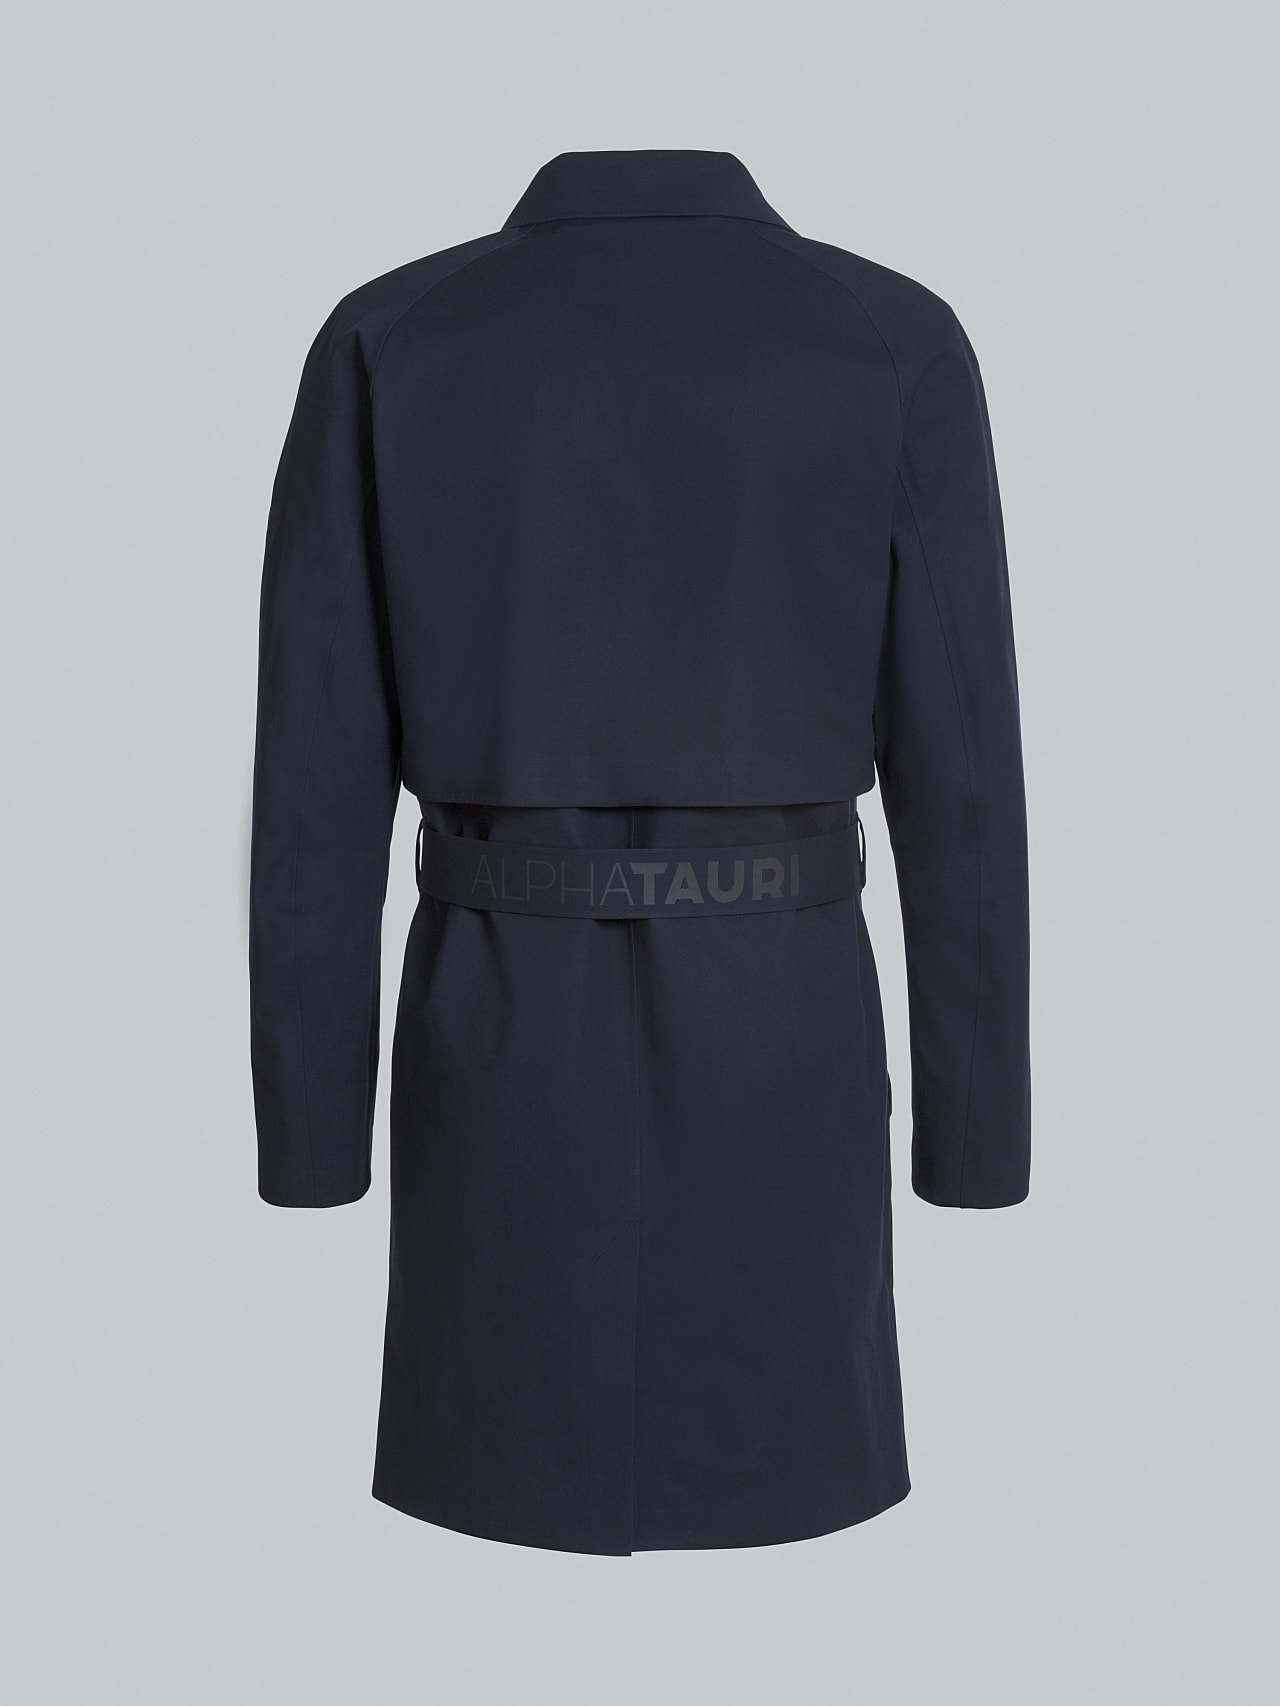 OMANA V1.Y5.02 Packable and Waterproof Trench Coat navy Left Alpha Tauri